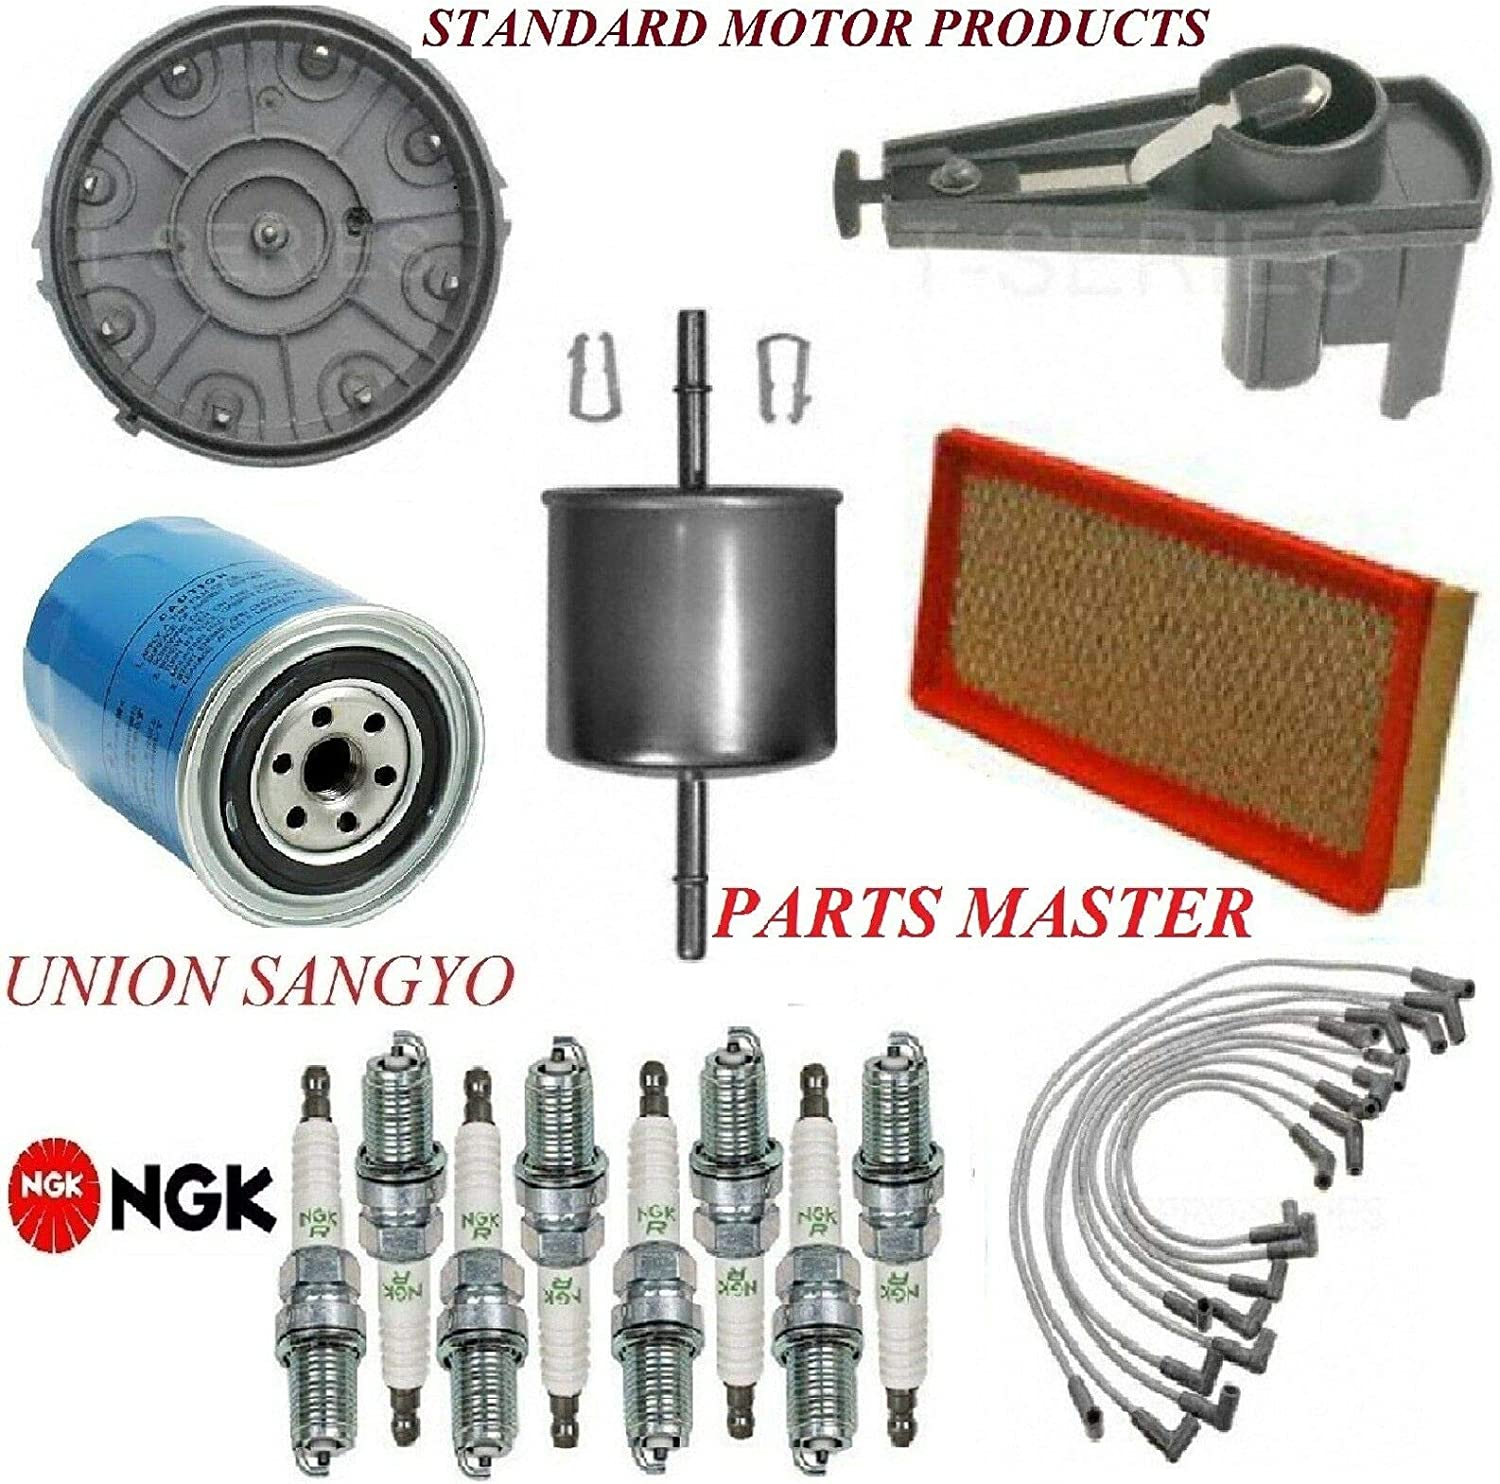 8USAUTO Tune Up Kit Filters Cap Manufacturer OFFicial shop Plugs Ford FIT F-150 New product! New type Spark Wire